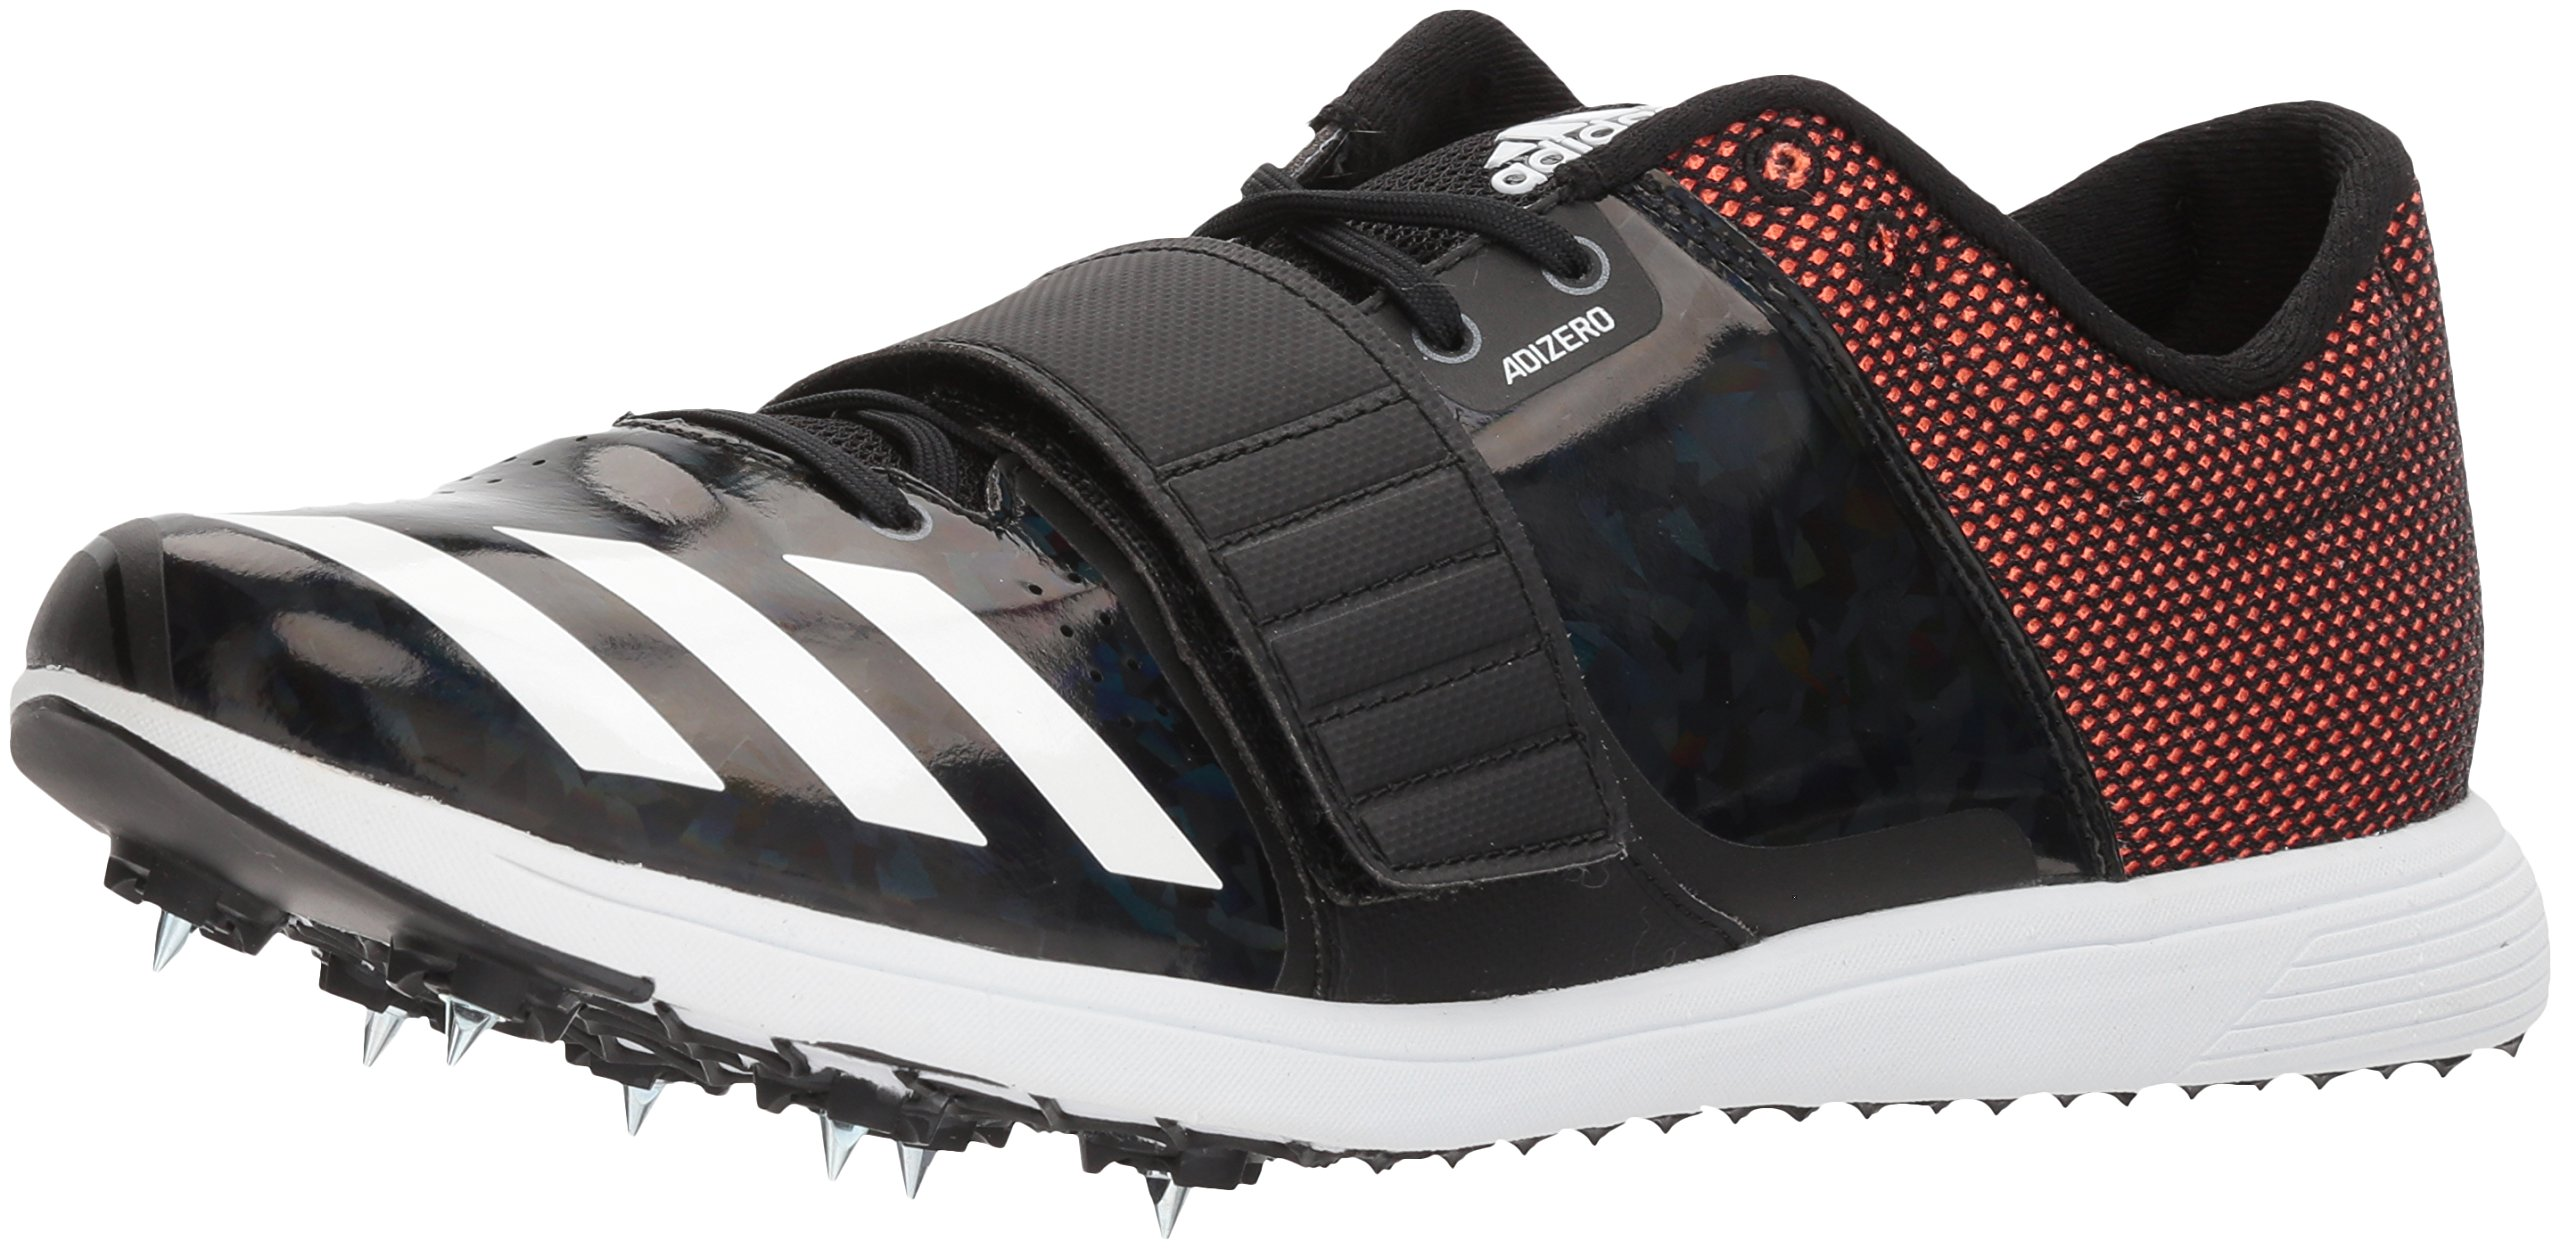 adidas Adizero TJ/PV Running Shoe, Core Black, Ftwr White, Orange, 13 M US